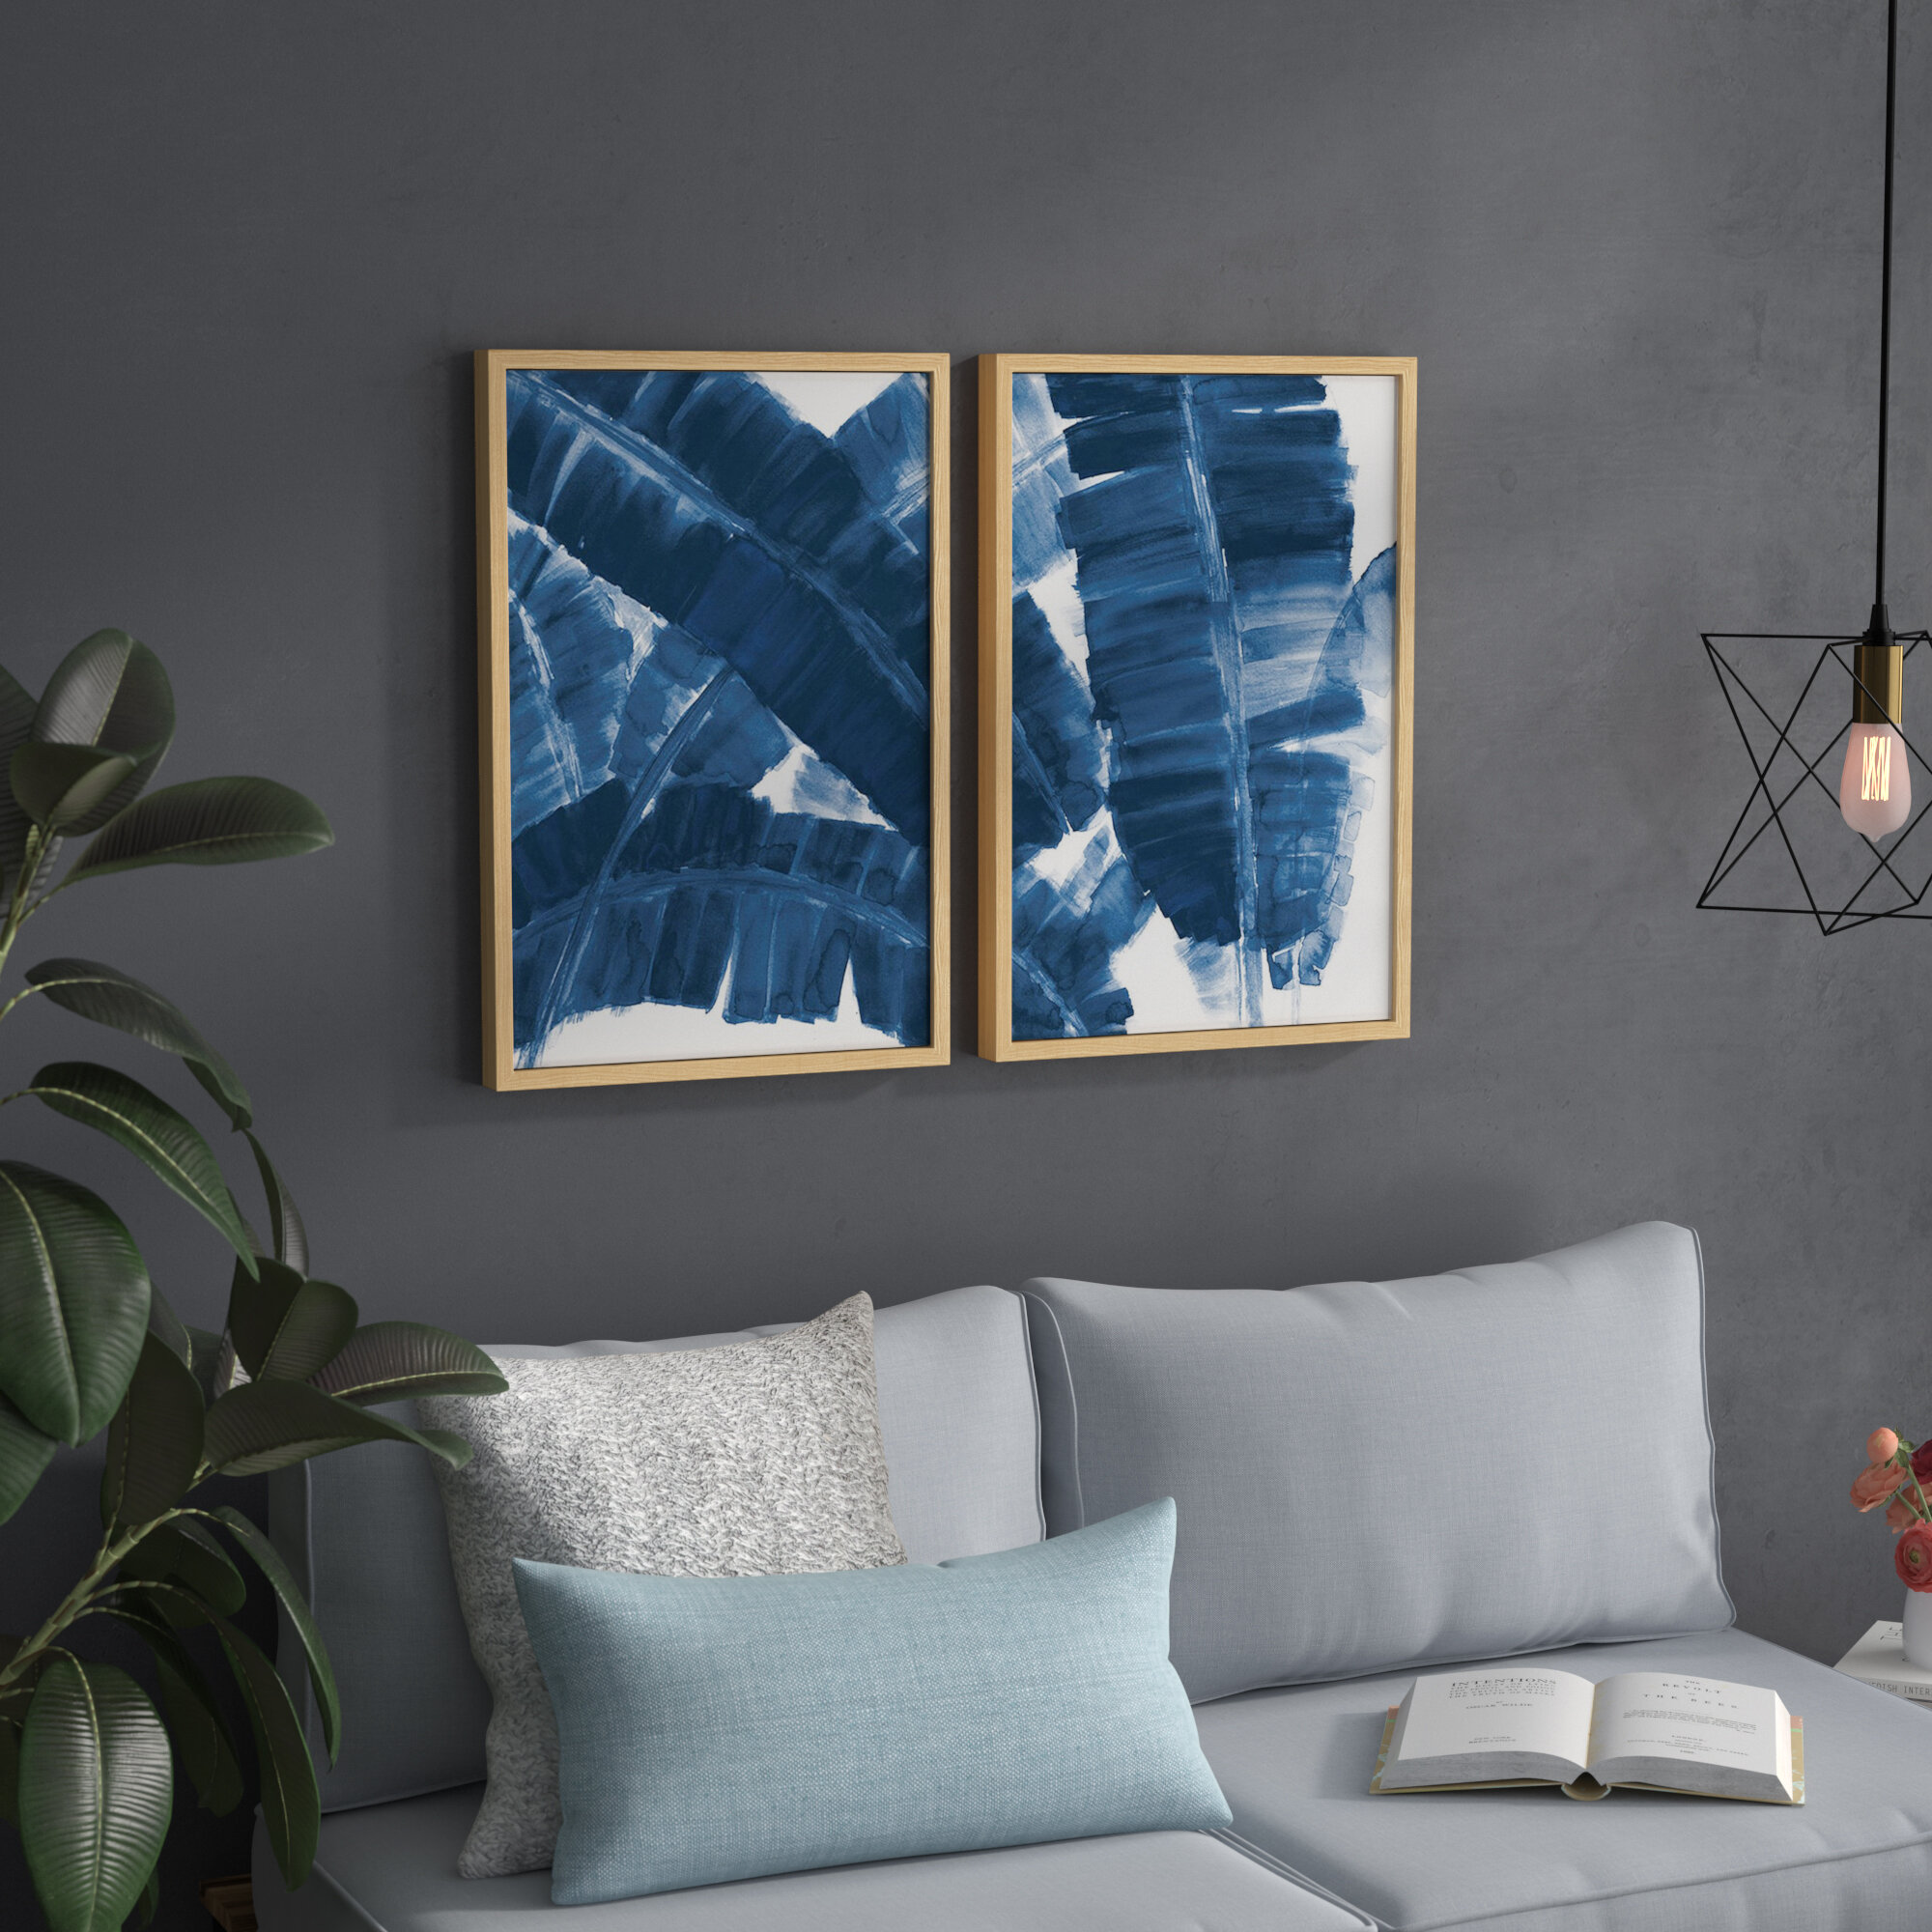 Marvelous Blue Banana Leaves Diptych 2 Piece Picture Frame Print Set On Paper Machost Co Dining Chair Design Ideas Machostcouk